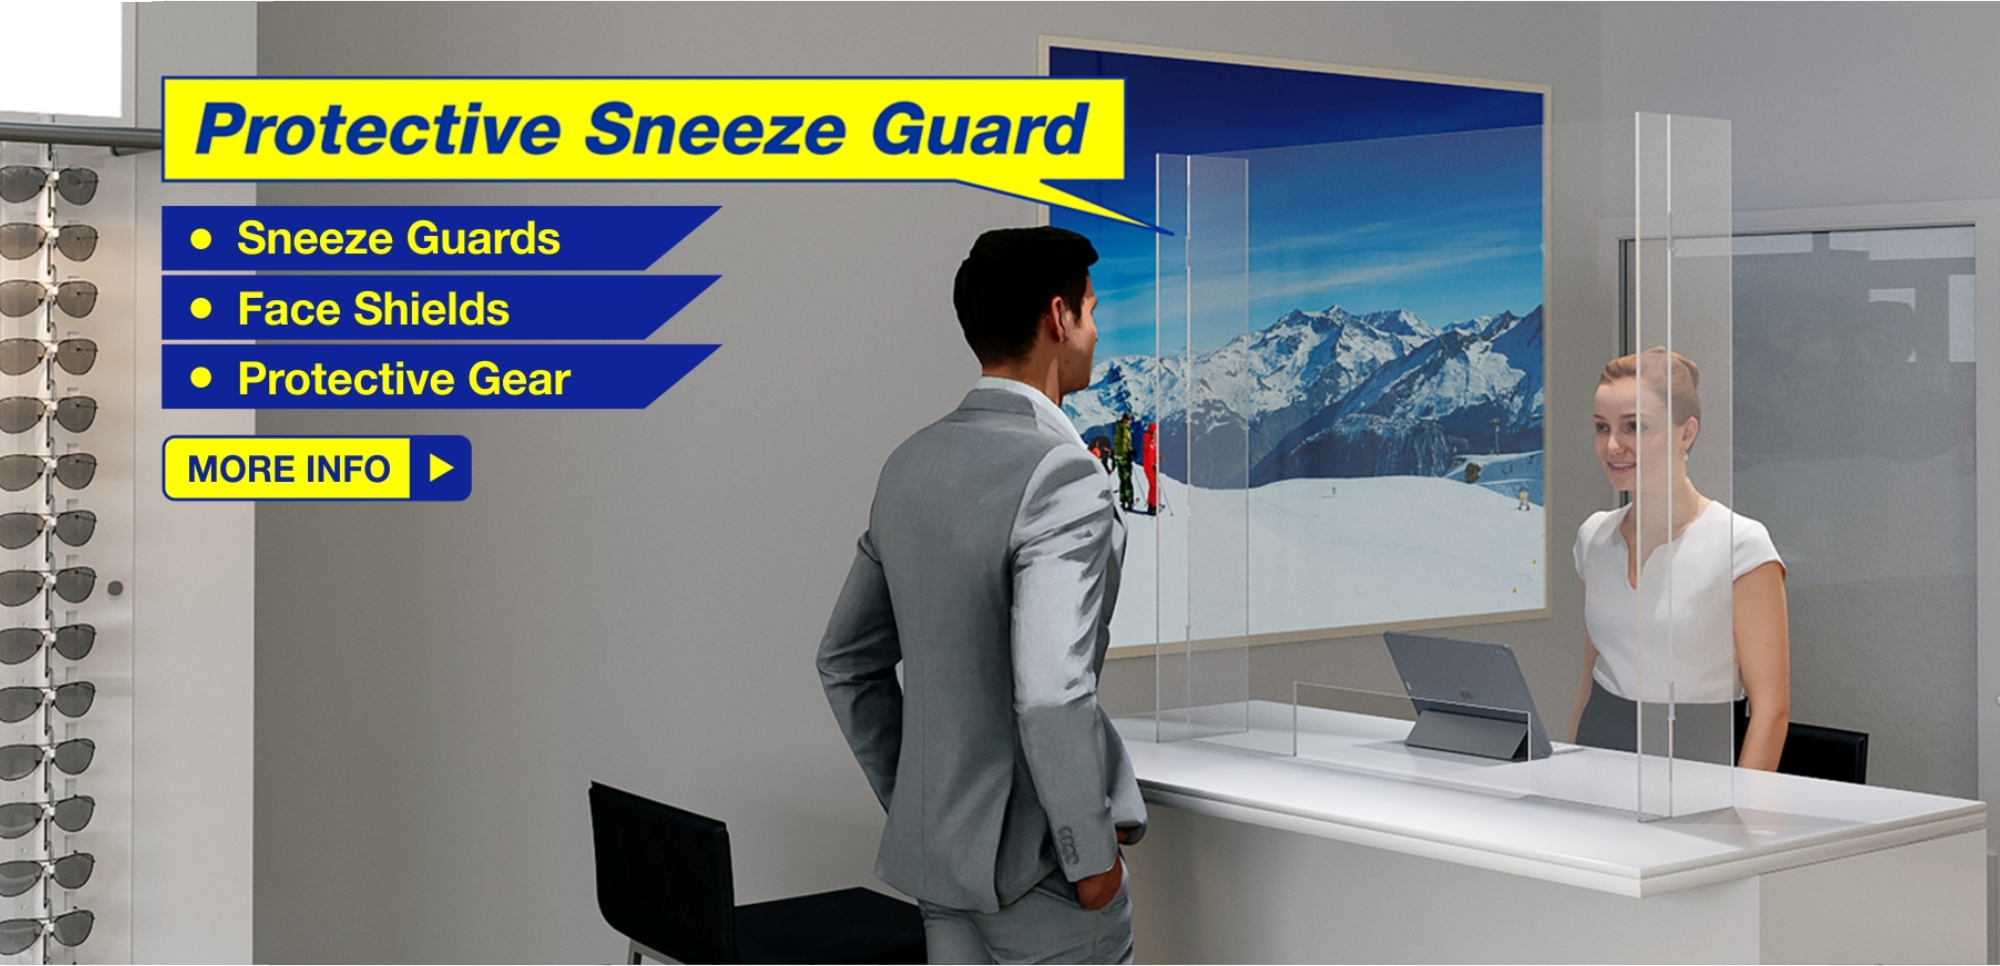 Protective Sneeze Guard for Retail and Office Staff